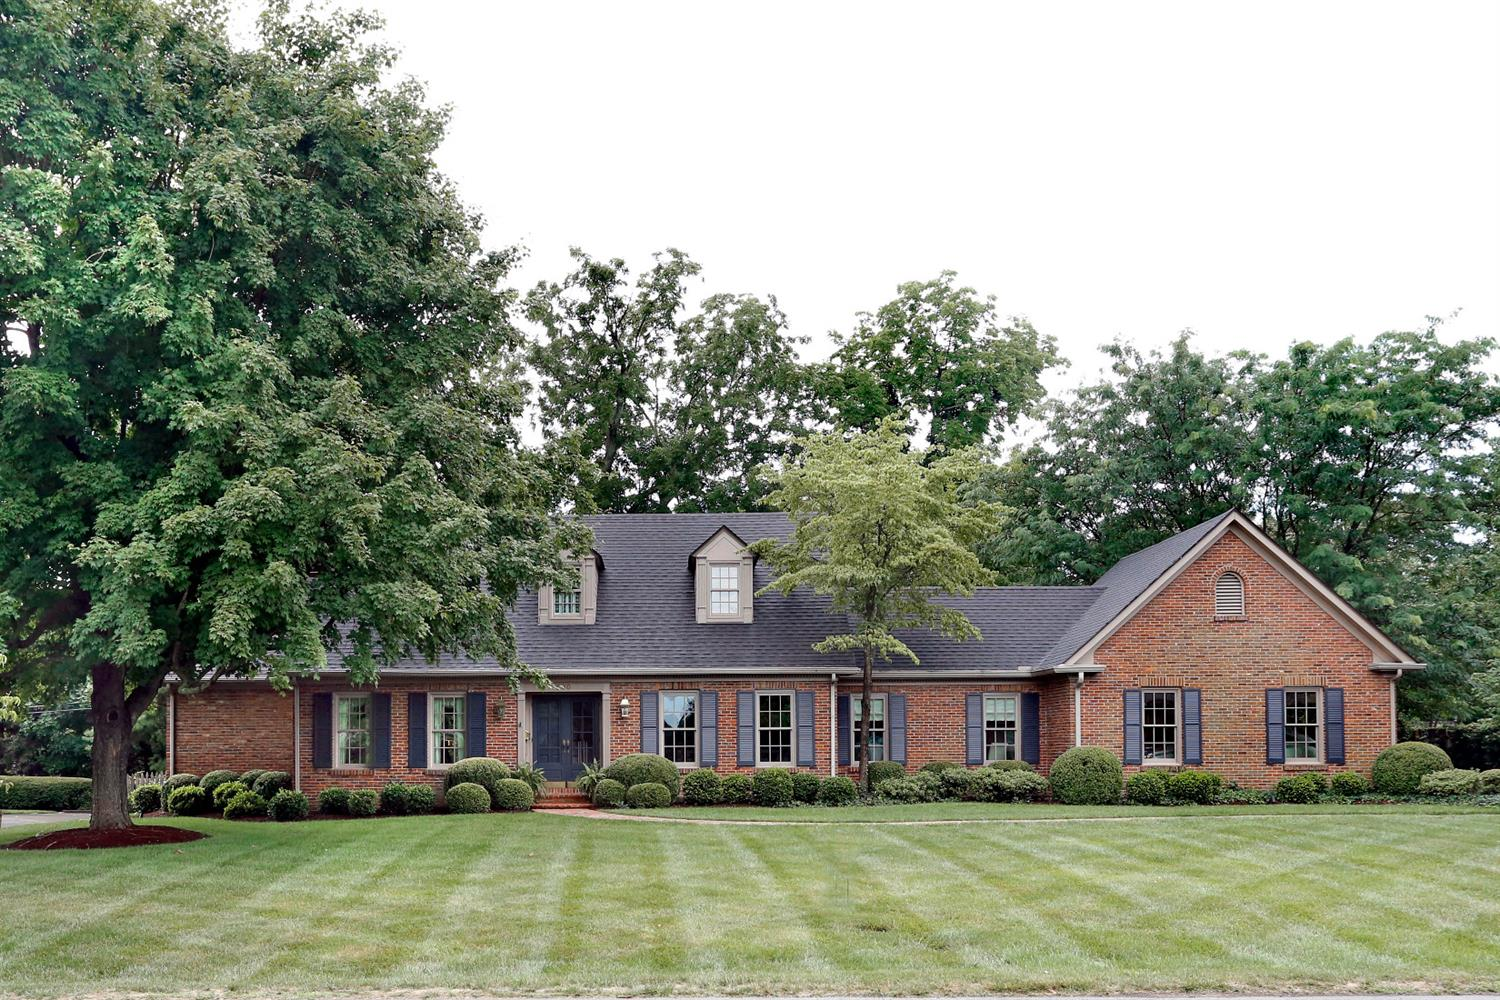 Home For Sale at 616 Beechmont Rd, Lexington, KY 40502